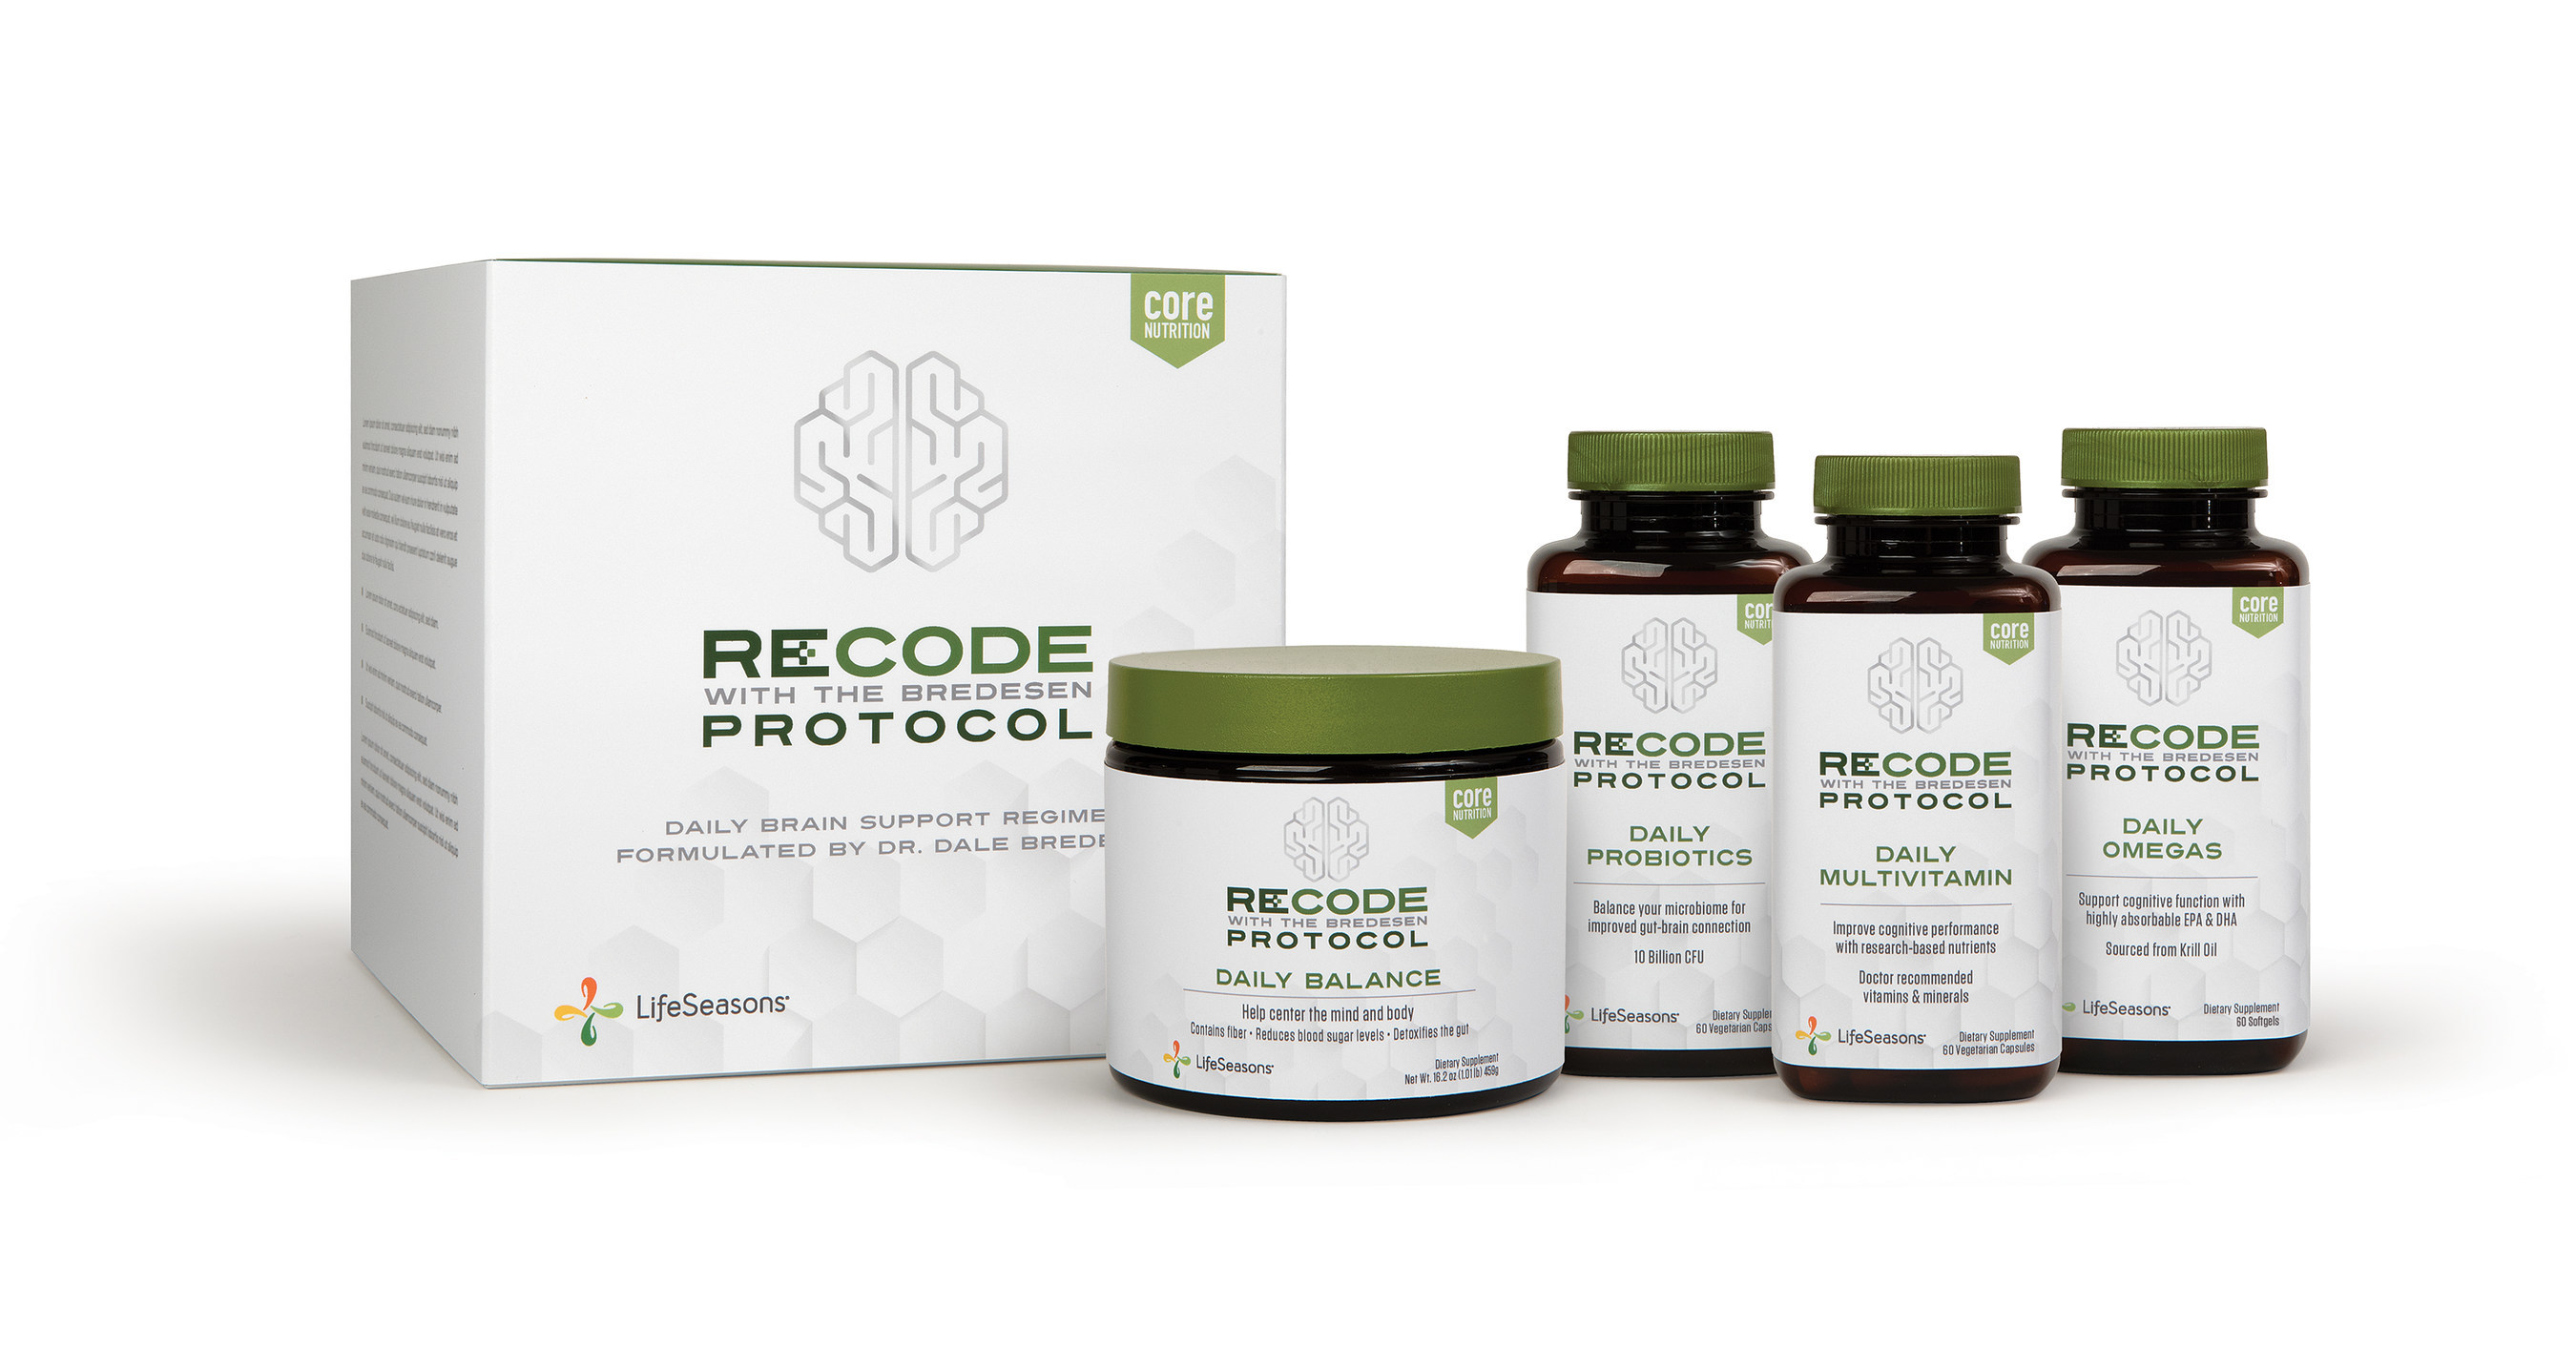 LifeSeasons and Dr. Dale Bredesen Announce New Products to Support the  Treatment of Alzheimer's Disease and Cognitive Decline